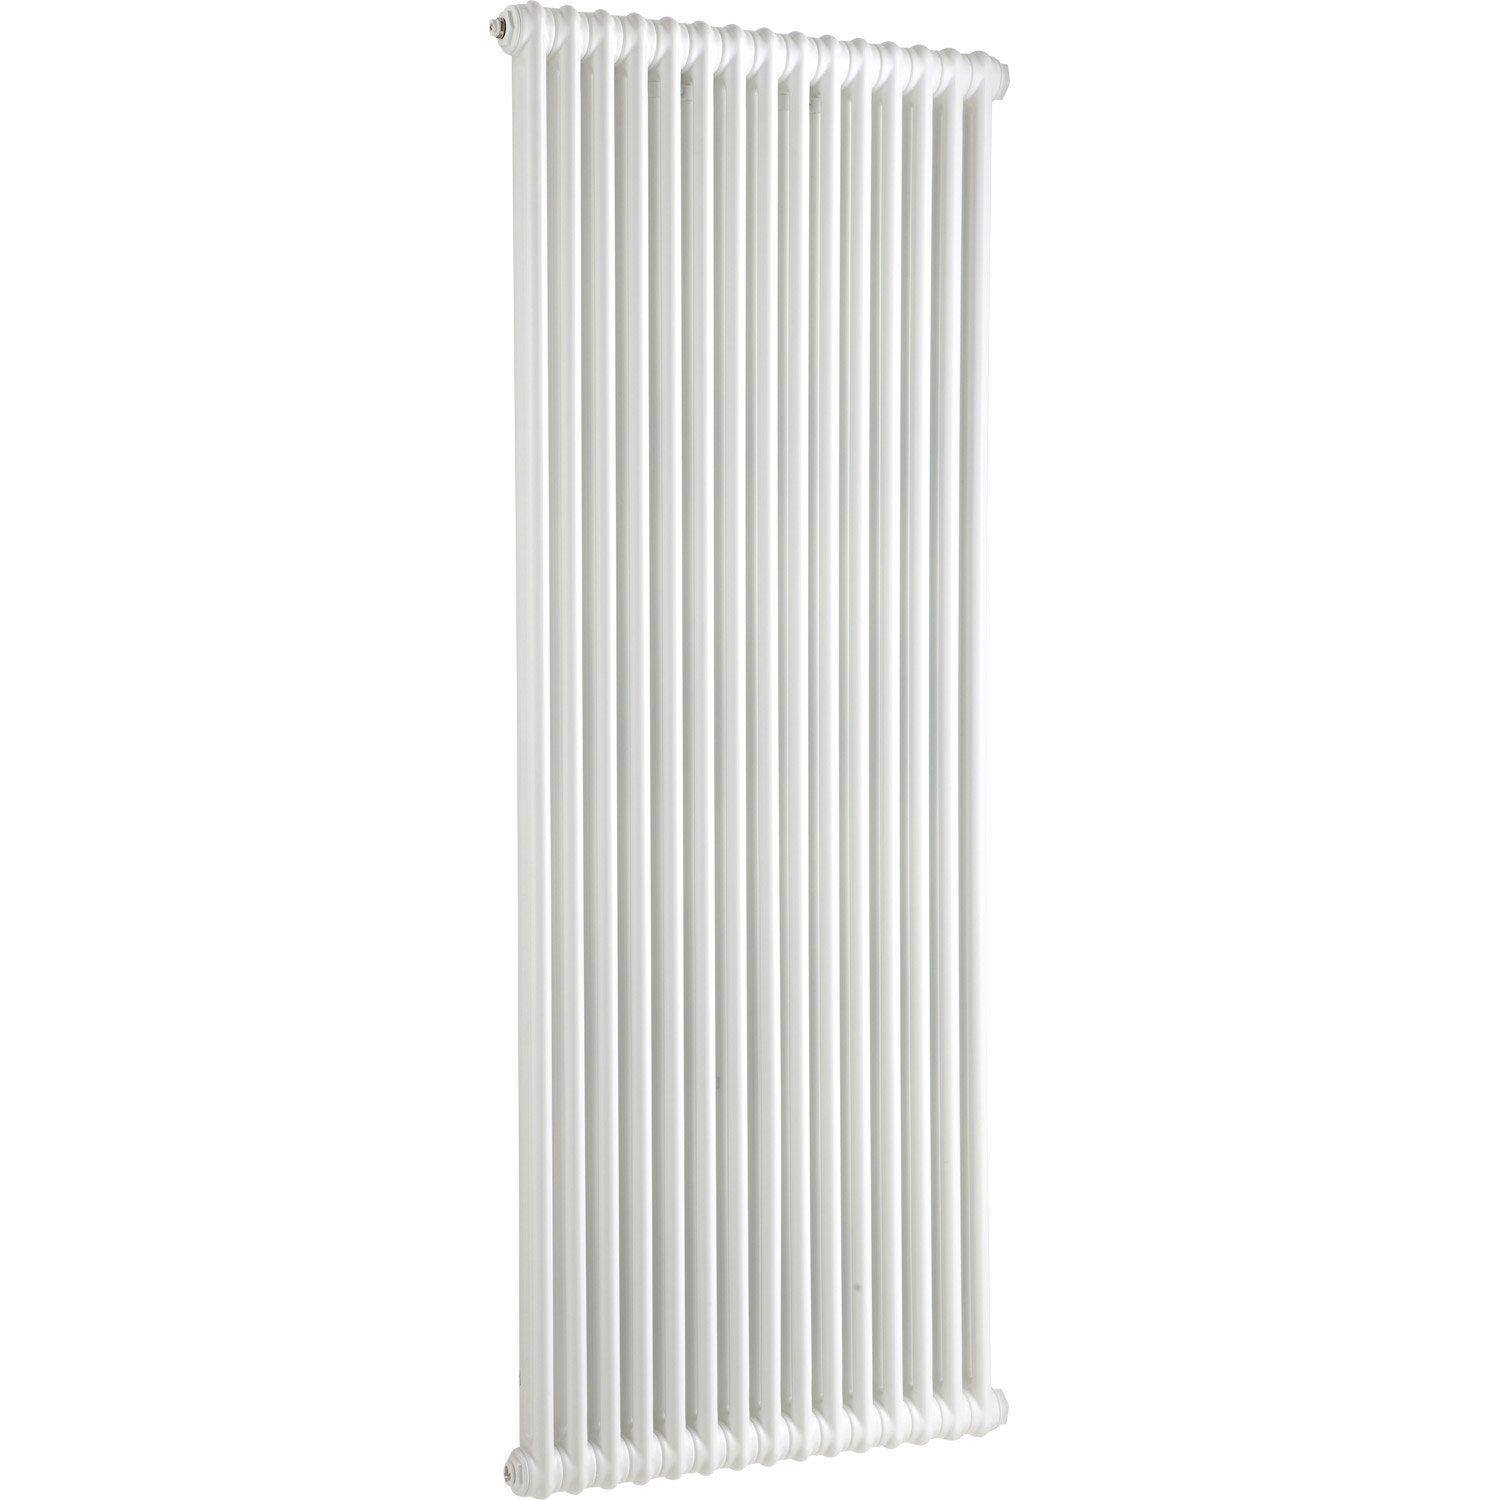 radiateur chauffage central acier tesi 2 blanc 1864w. Black Bedroom Furniture Sets. Home Design Ideas